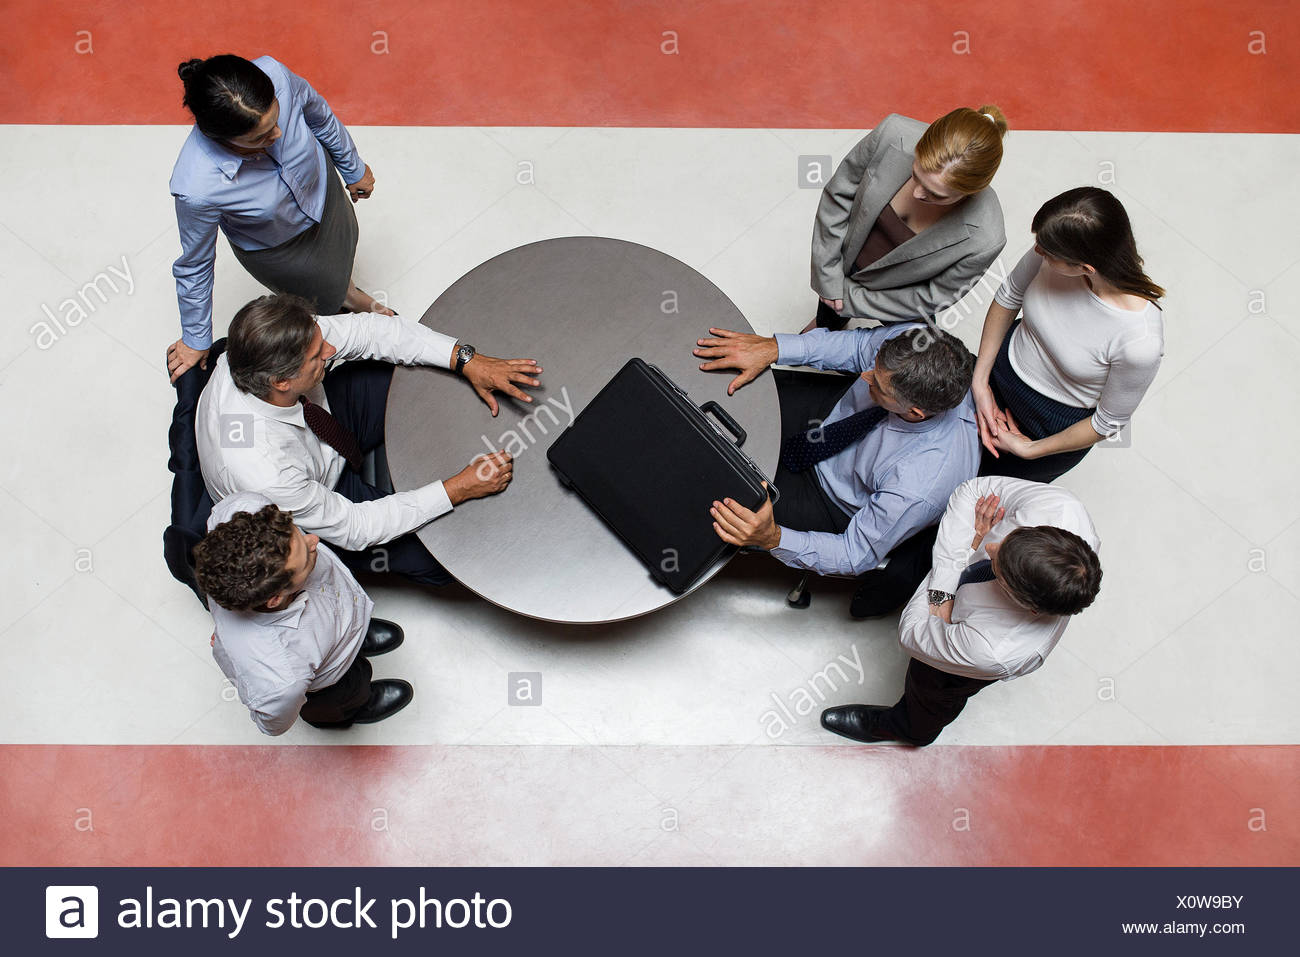 Businessman flanked by support staff considers opponents offered deal - Stock Image